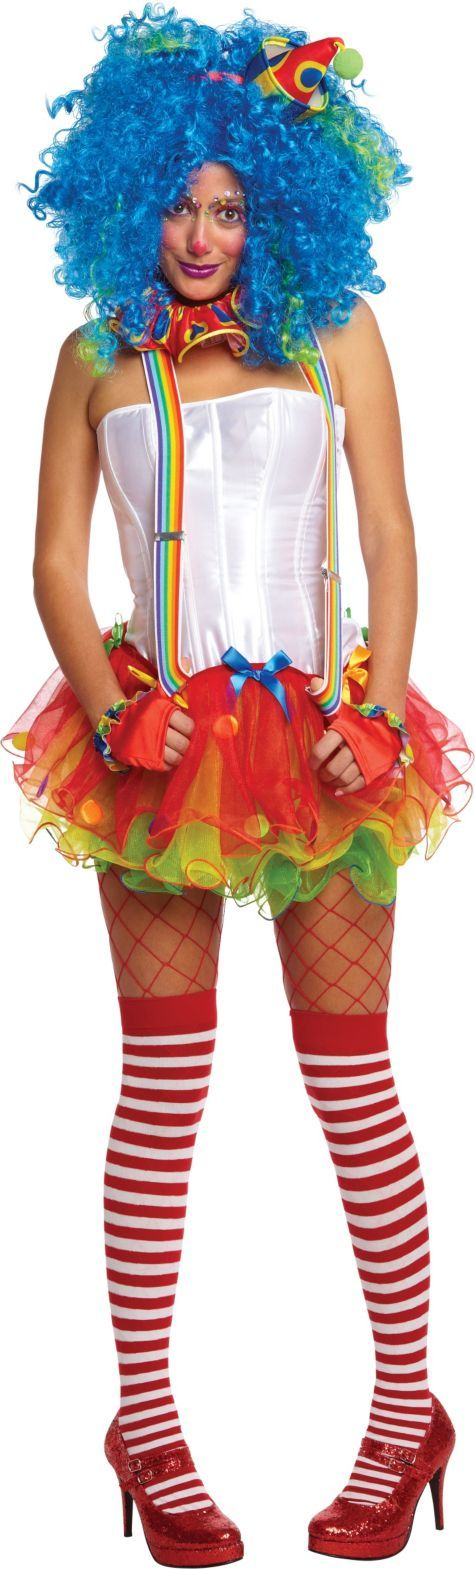 17 Best ideas about Clown Costumes on Pinterest   Circus ...